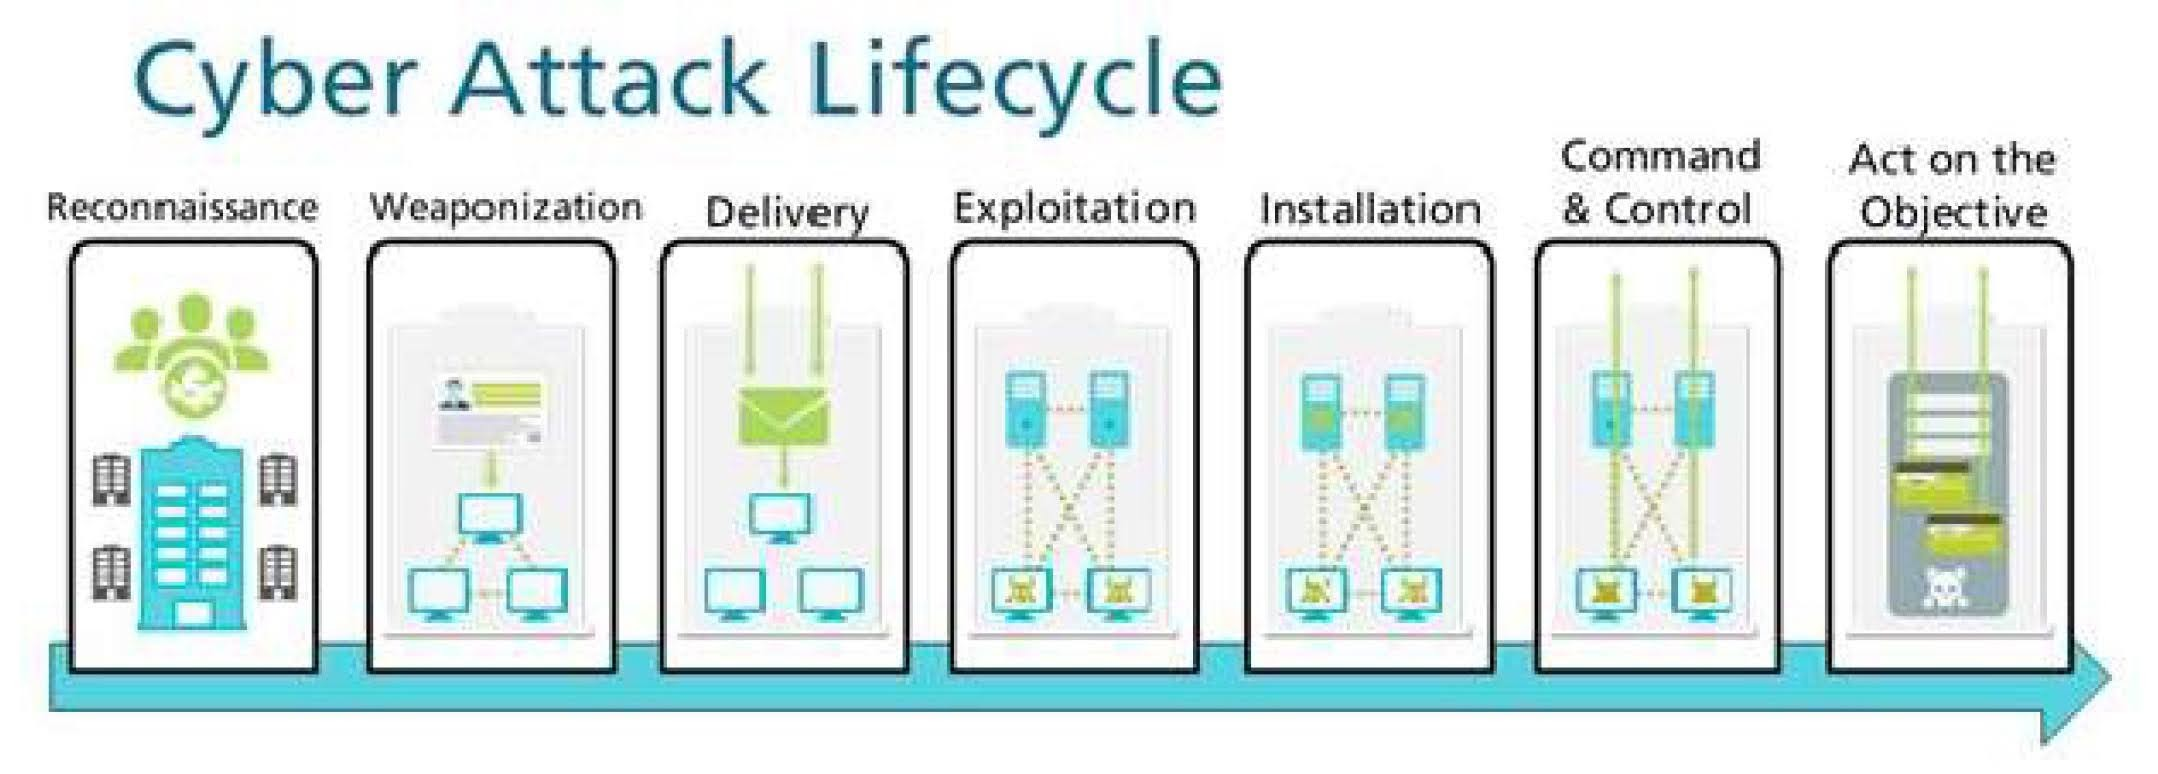 At which stage of the Cyber-Attack Lifecycle would the attacker attach an infected PDF file to an email?